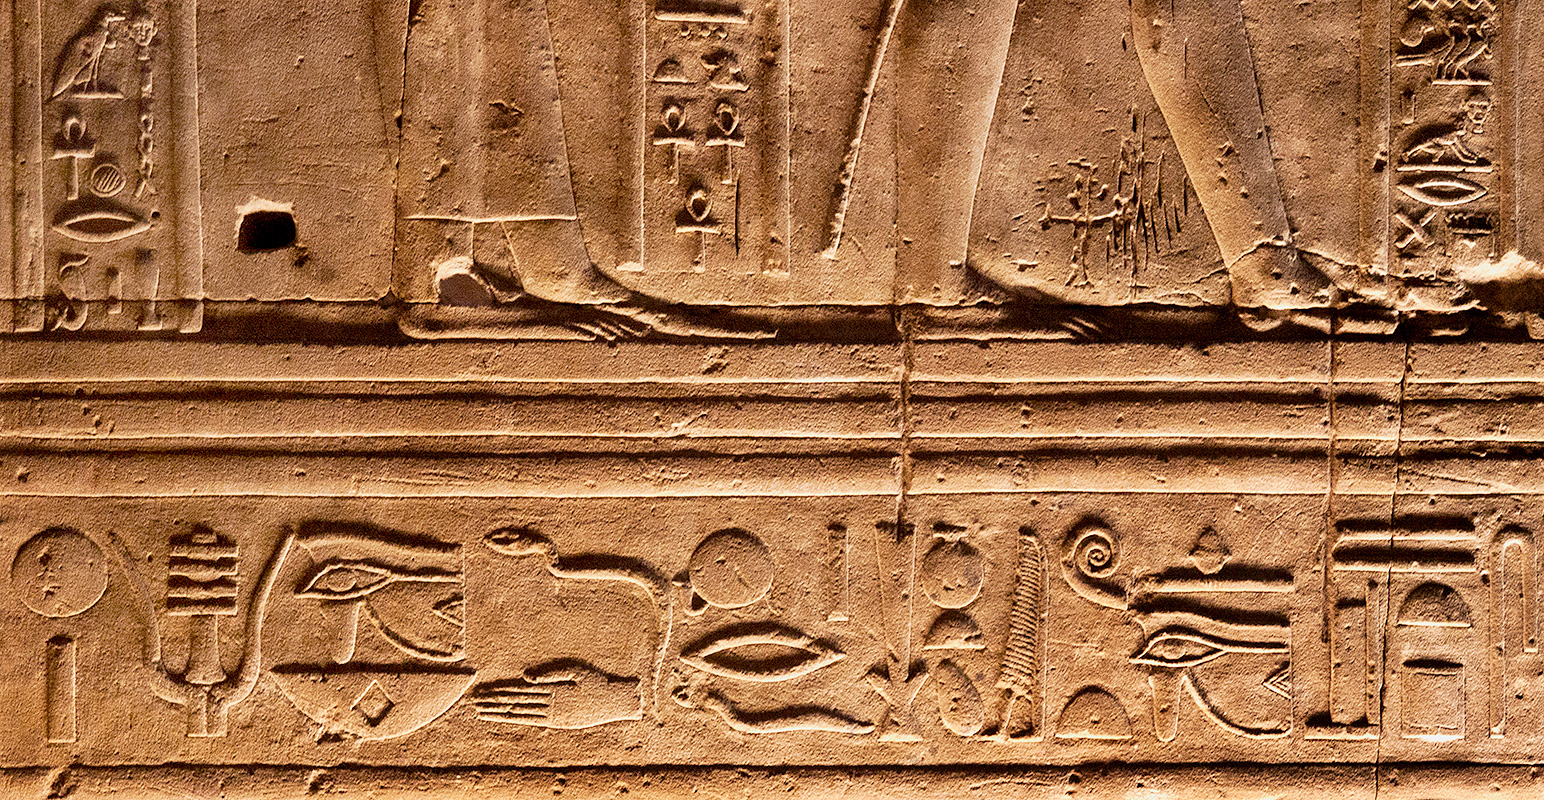 Edfu Feet with Hieroglyphics